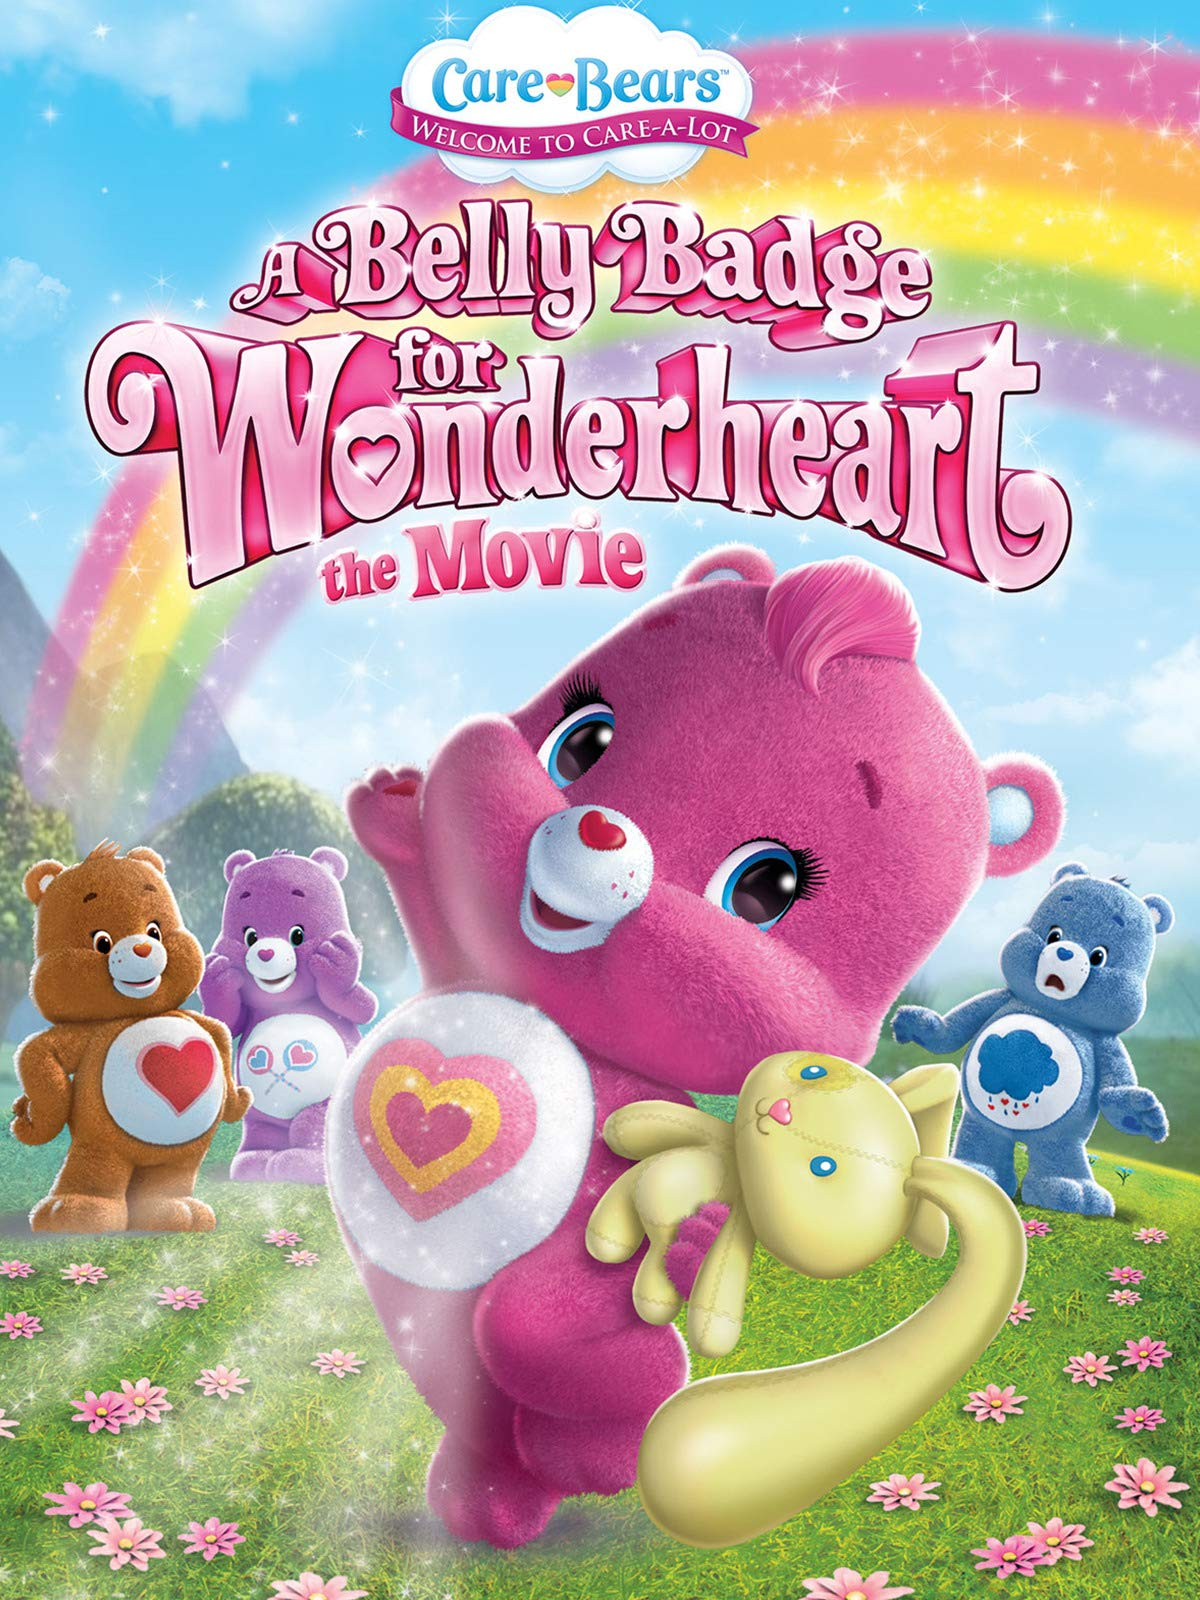 Care Bears: A Belly Badge for Wonderheart - The Movie on Amazon Prime Video UK